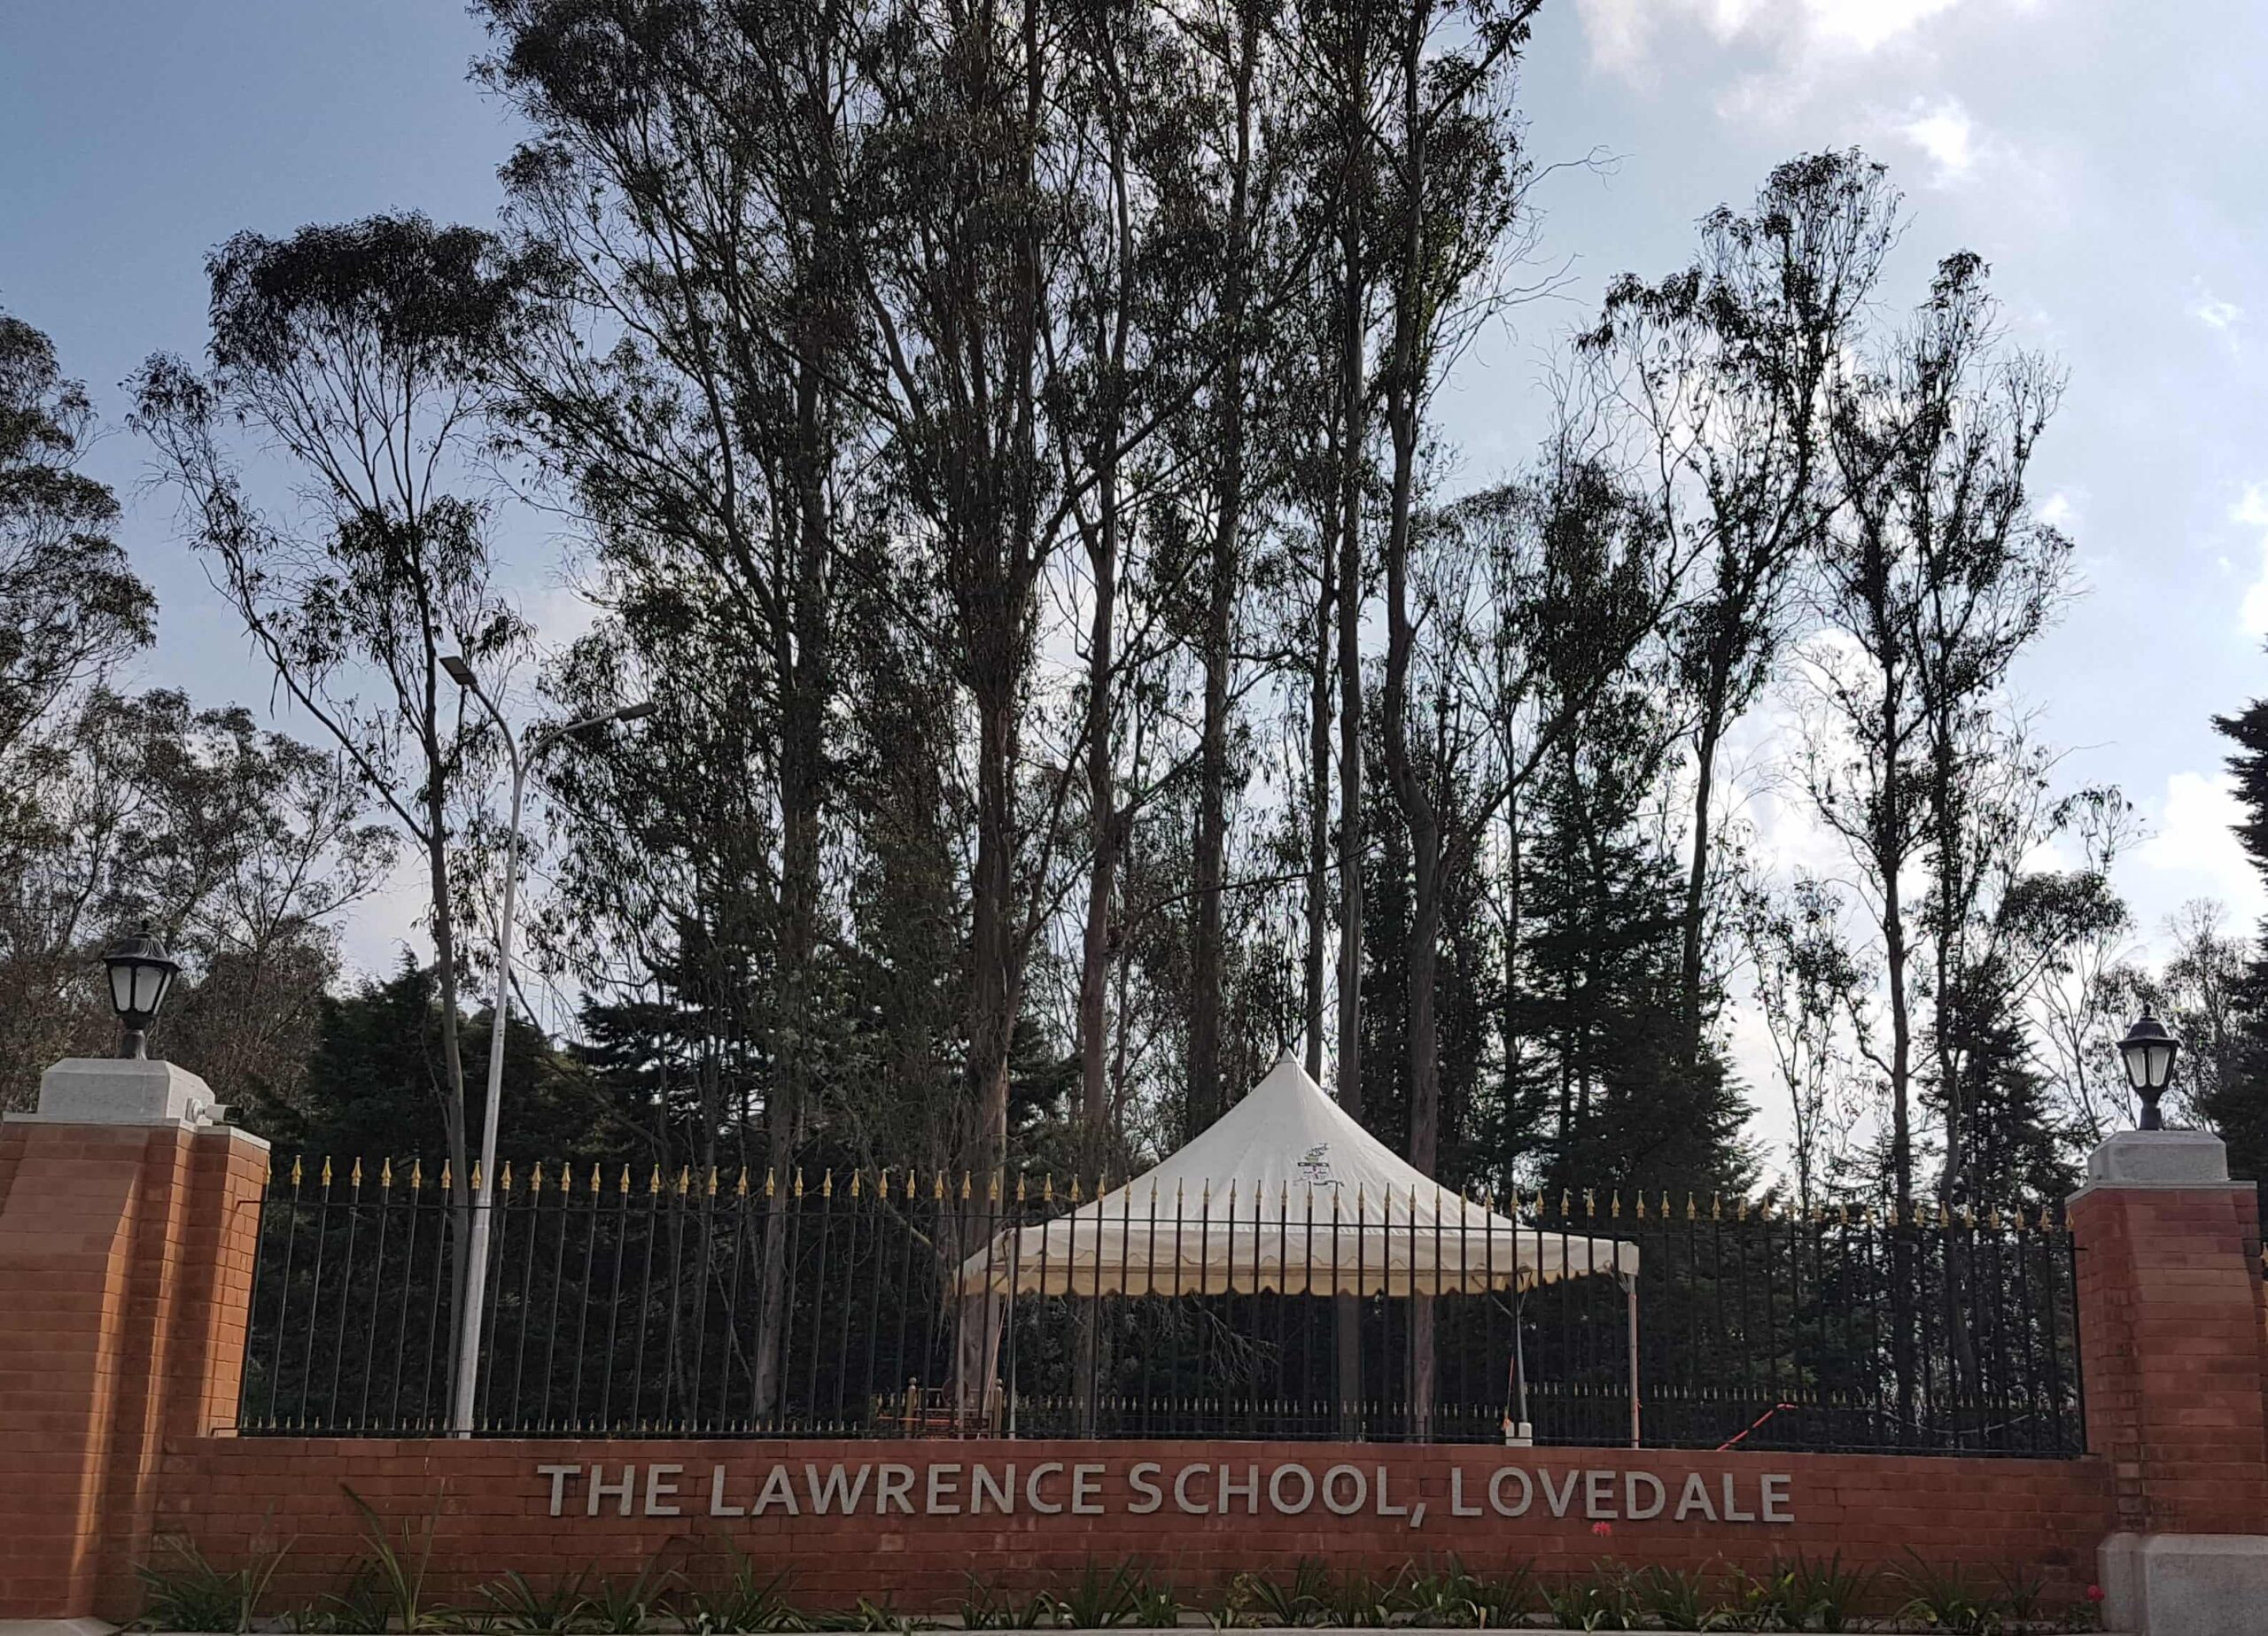 Ooty, the Nilgiris District: The Lawrence School